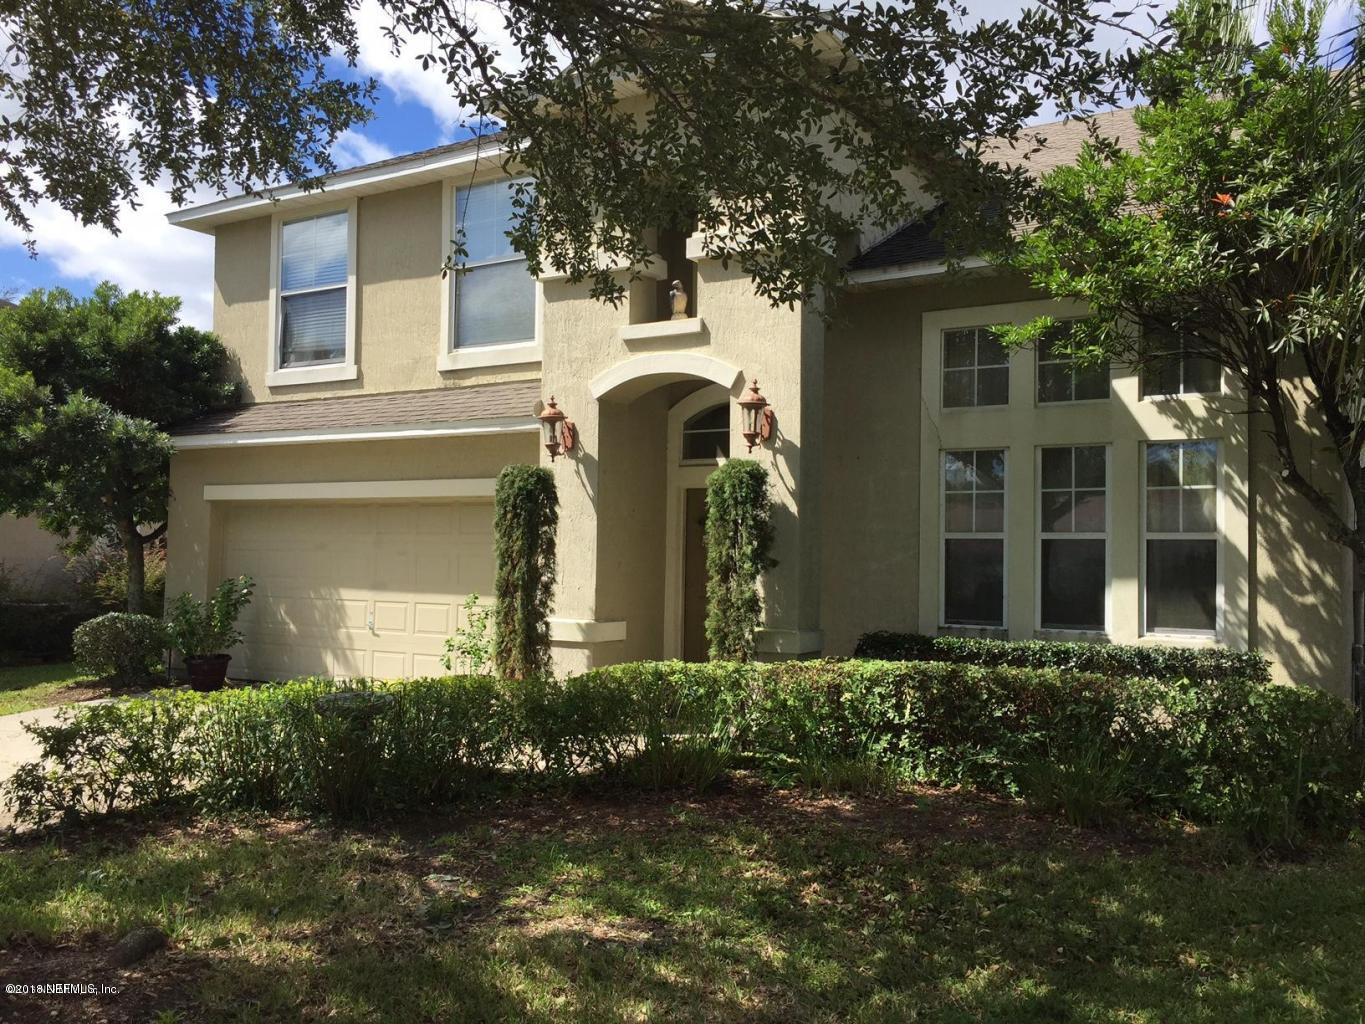 3275 MILLPOND, ORANGE PARK, FLORIDA 32065, 4 Bedrooms Bedrooms, ,3 BathroomsBathrooms,Residential - single family,For sale,MILLPOND,960673